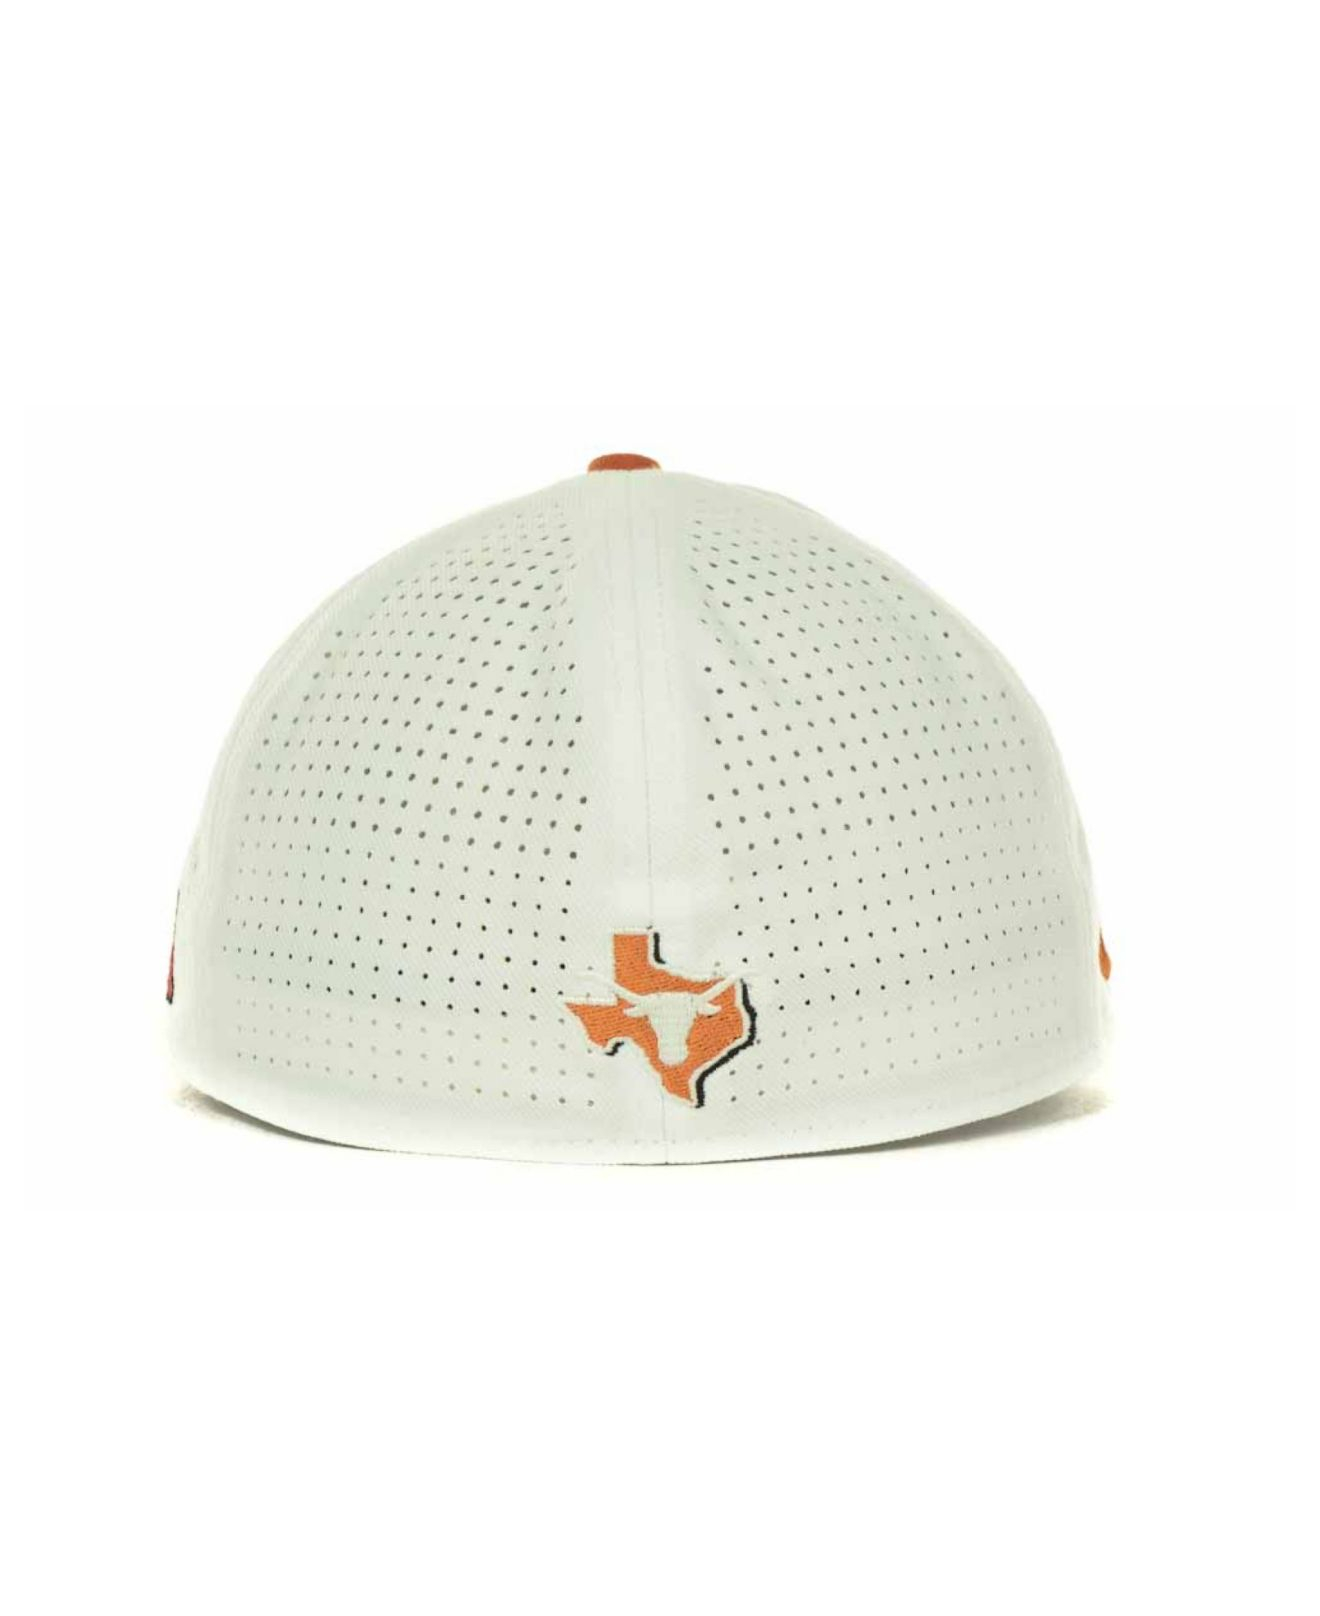 8ce55dc01763d Nike Texas Longhorns Ncaa Authentic Vapor Fitted Cap in White for ...